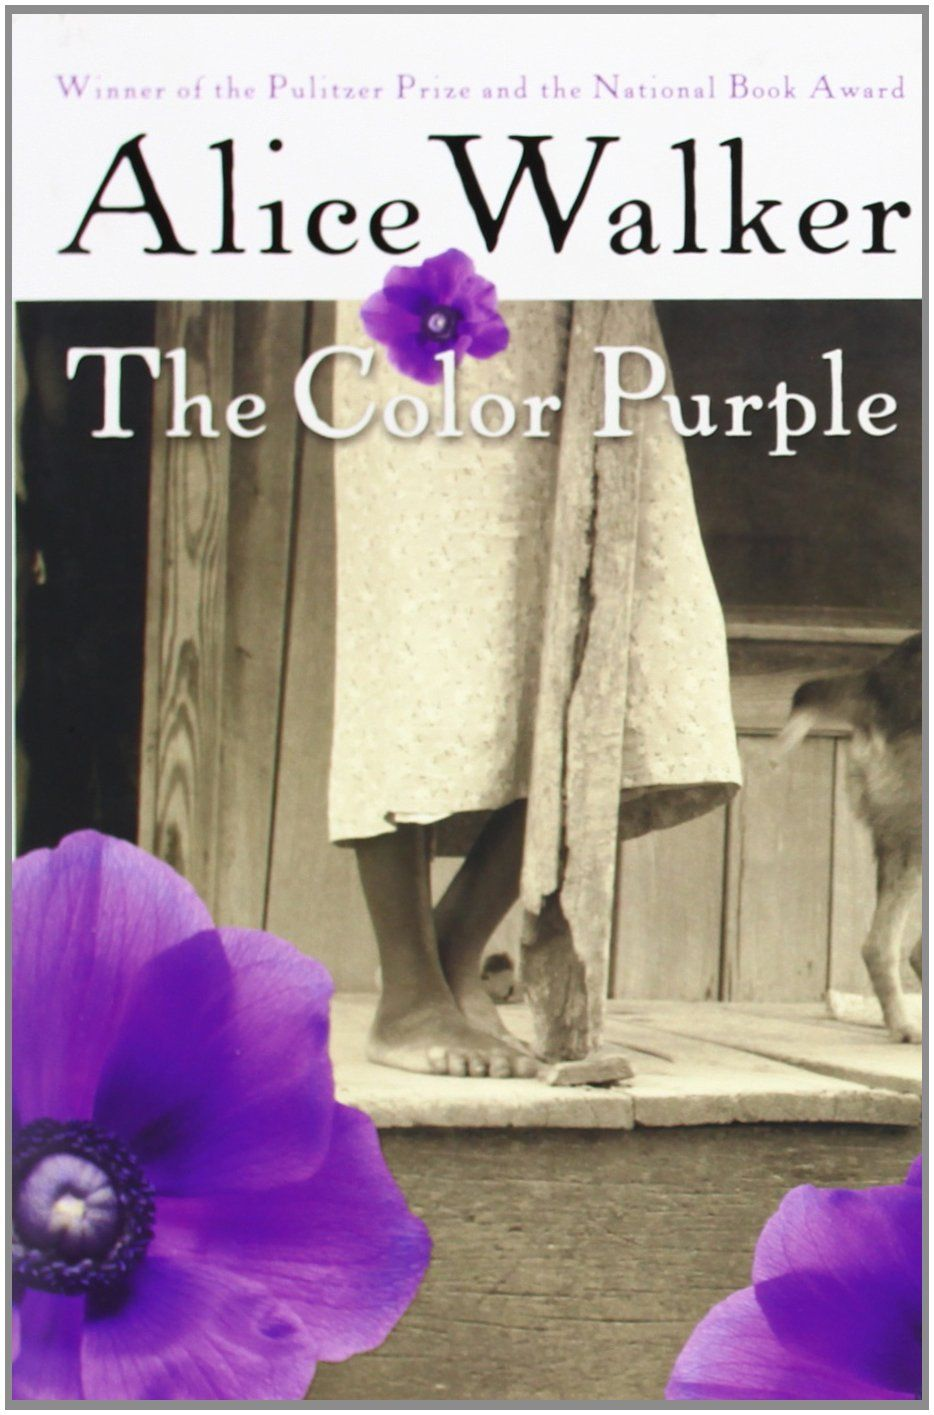 The Color Purple by Alice Walker / PS3573.A425 C6 1982 / http ...